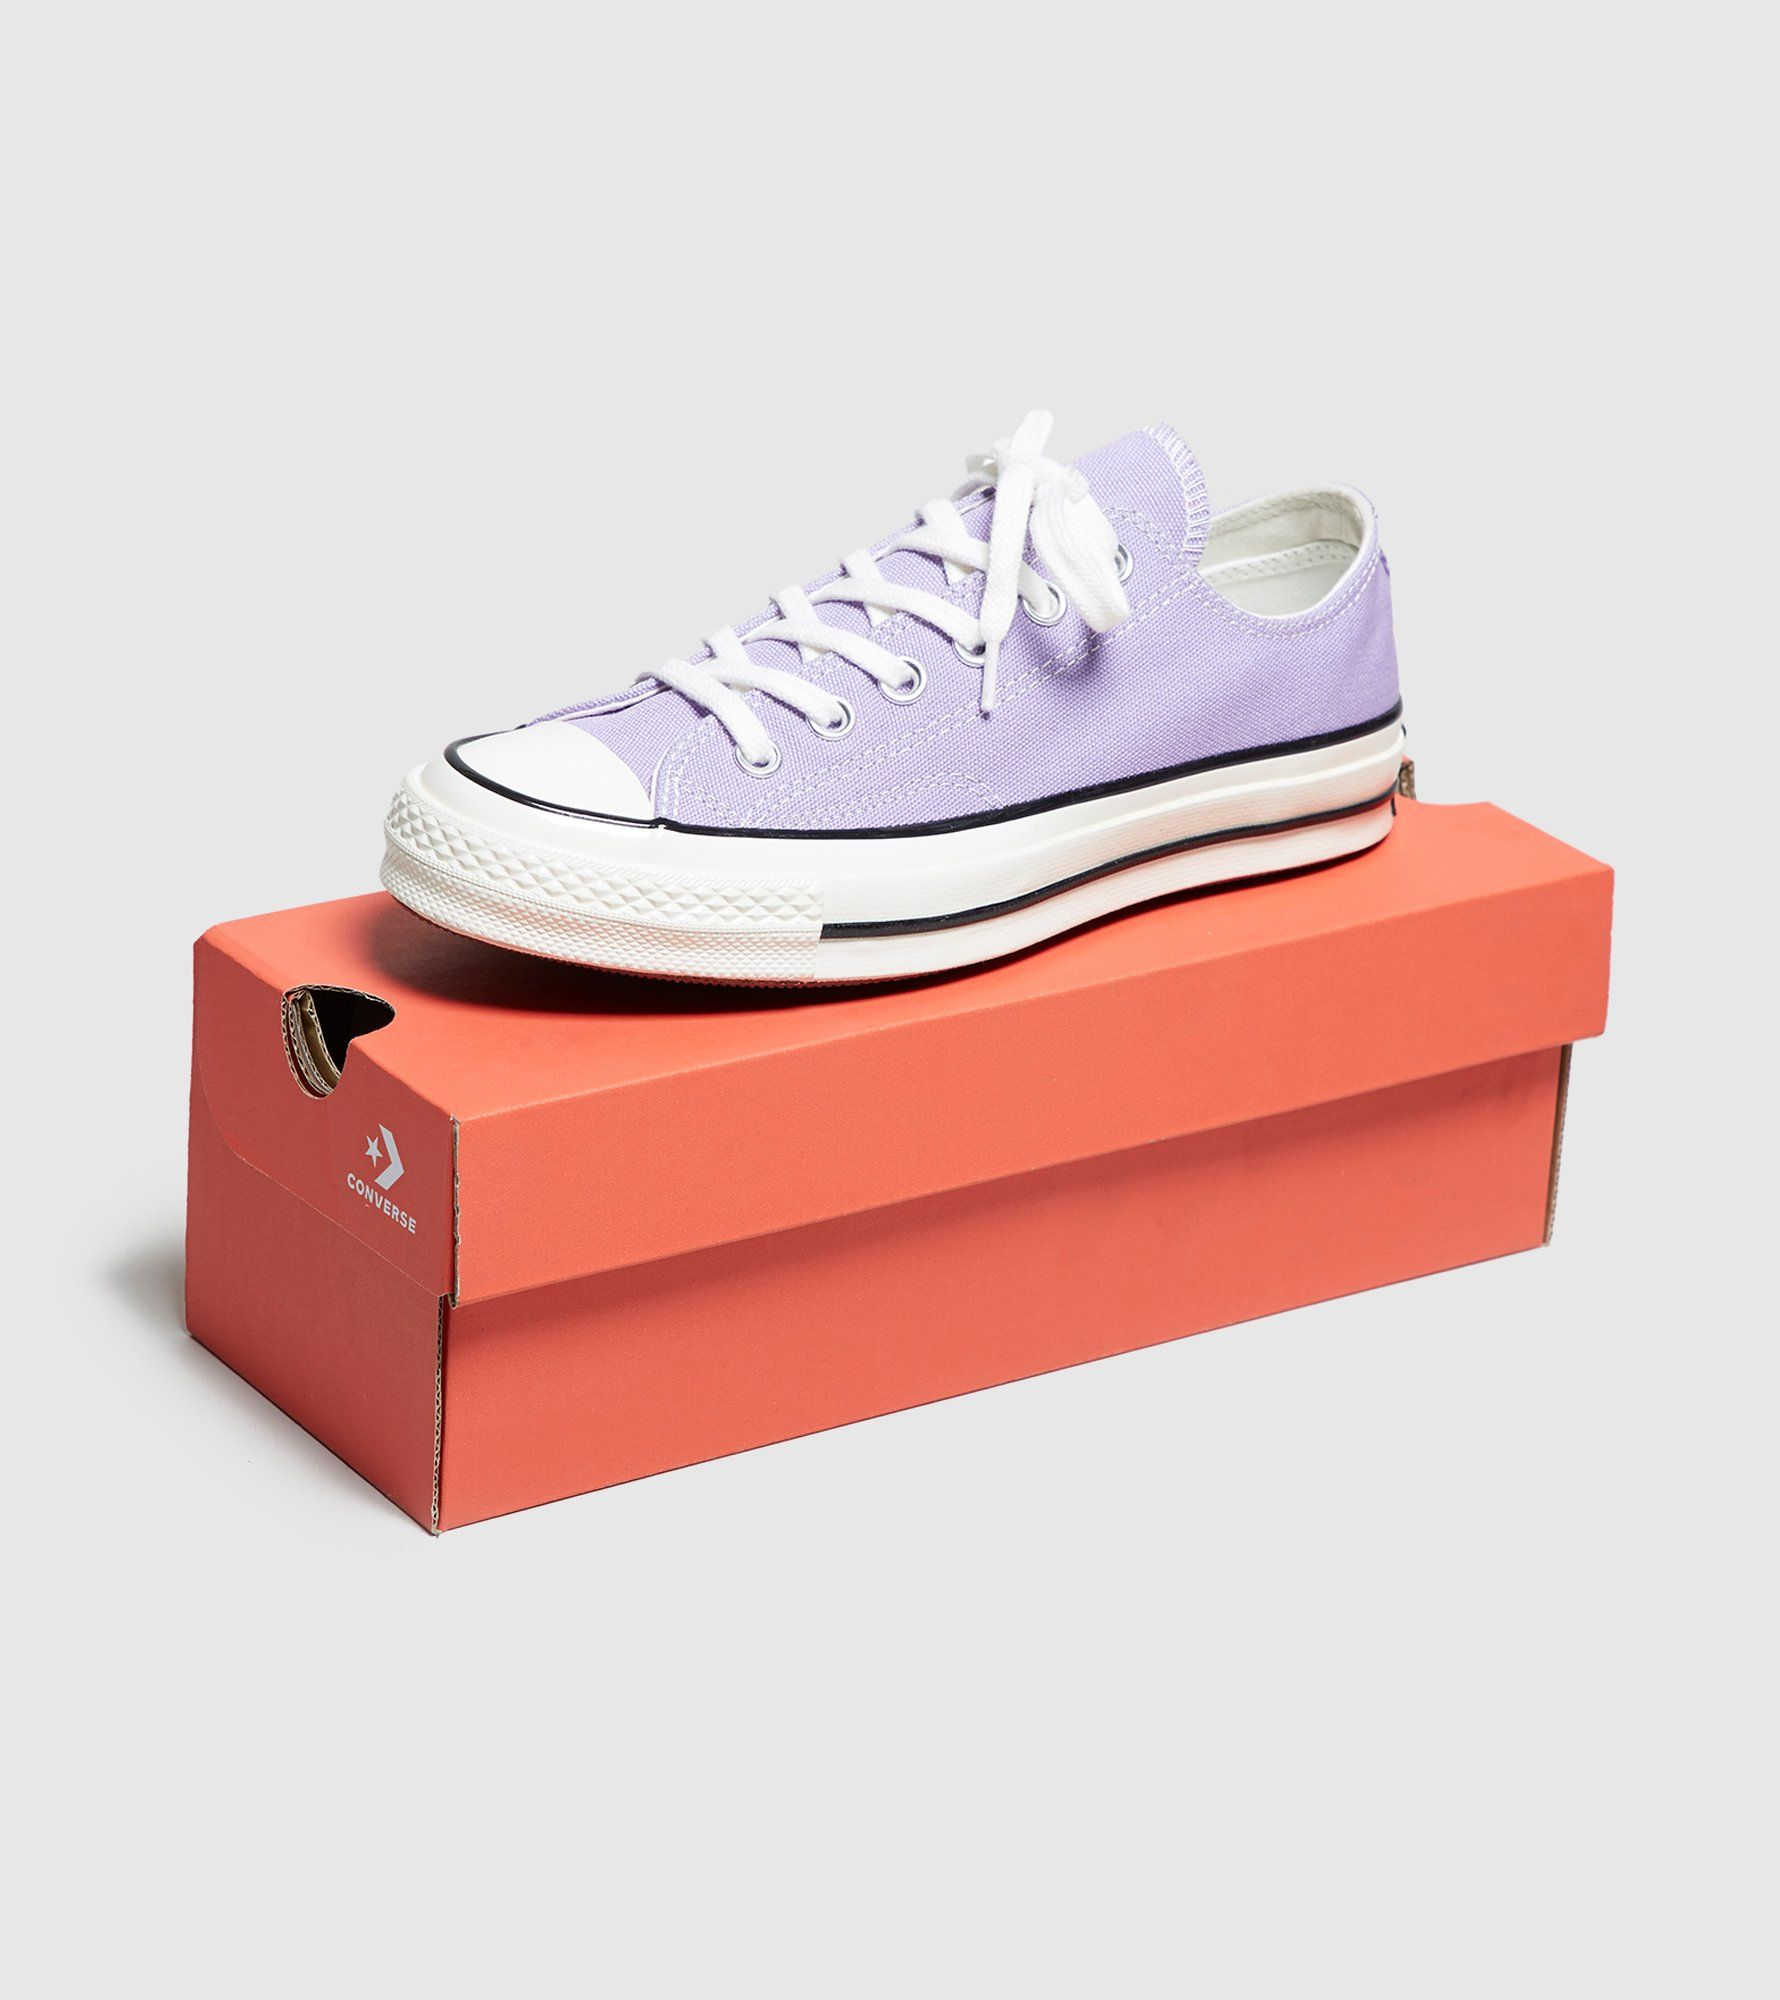 Converse Chuck Taylor All Star 70 Low Women's